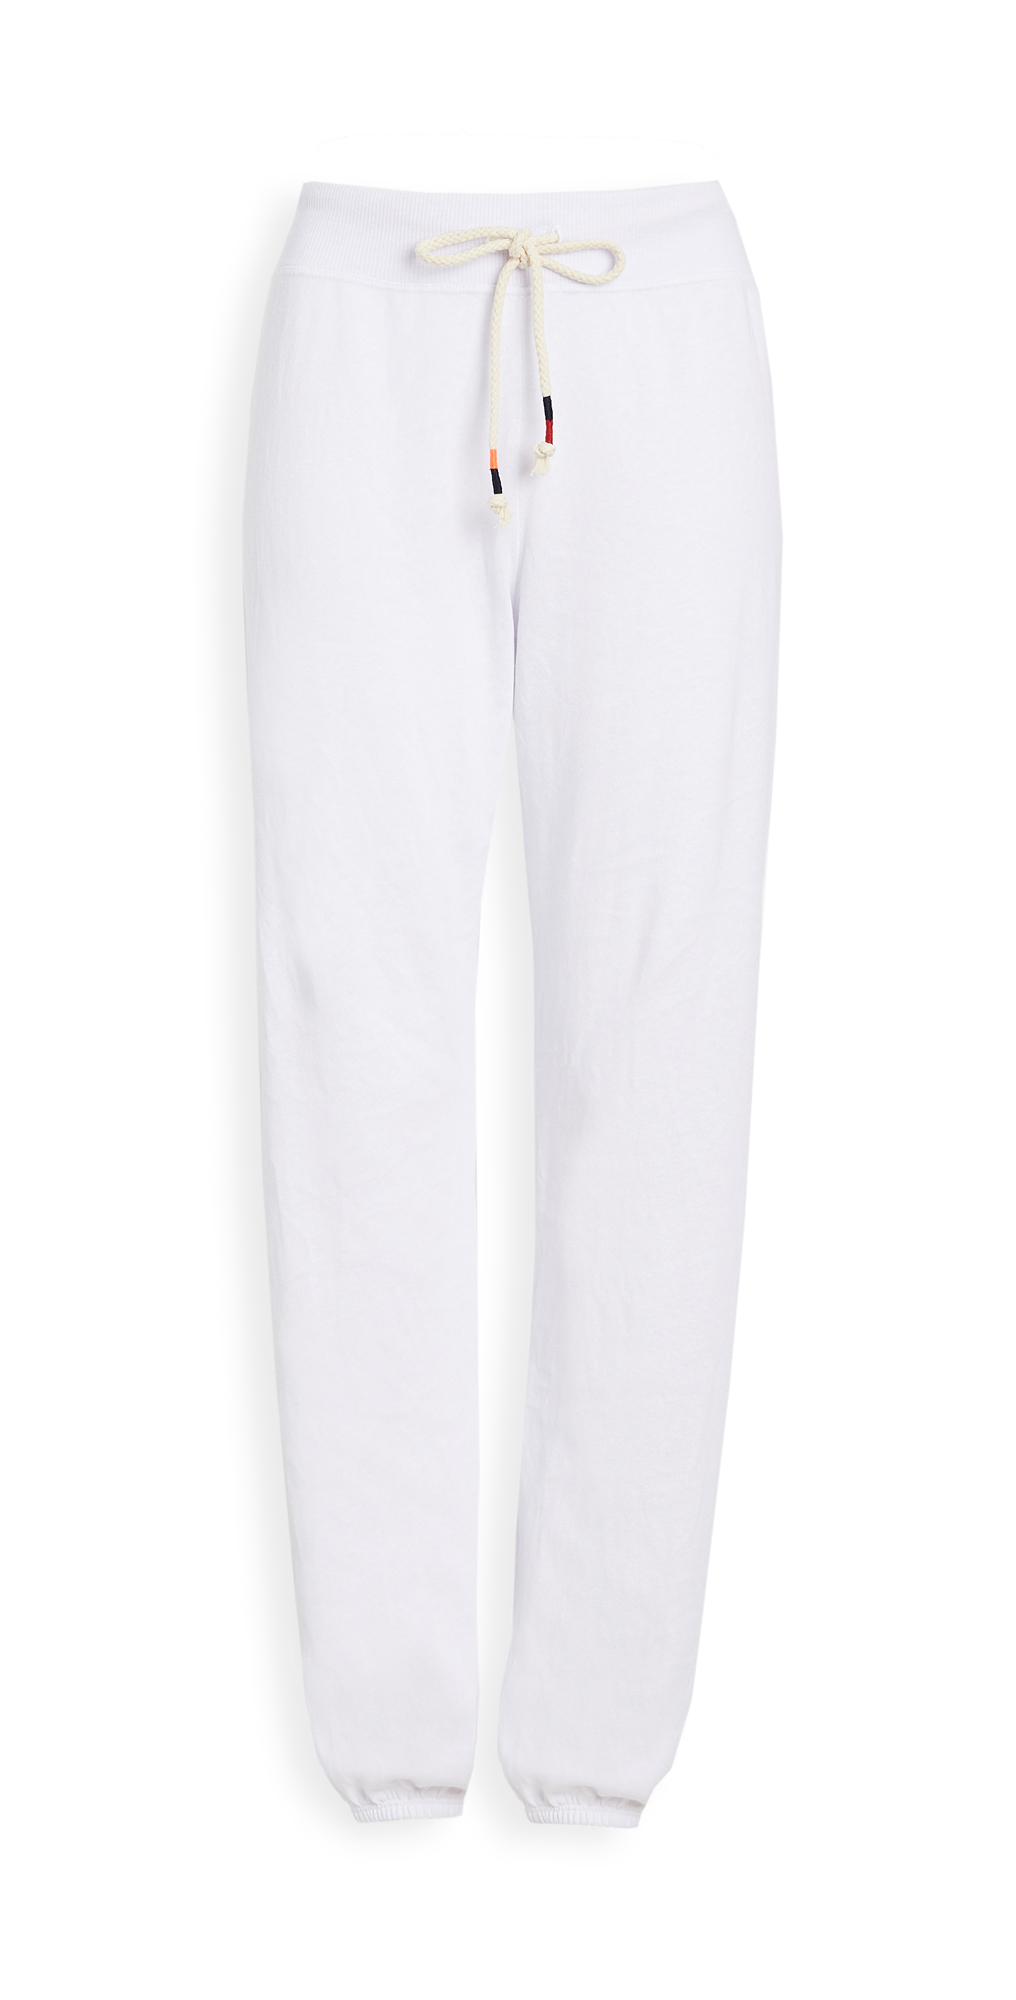 SUNDRY Fleece Sweatpants